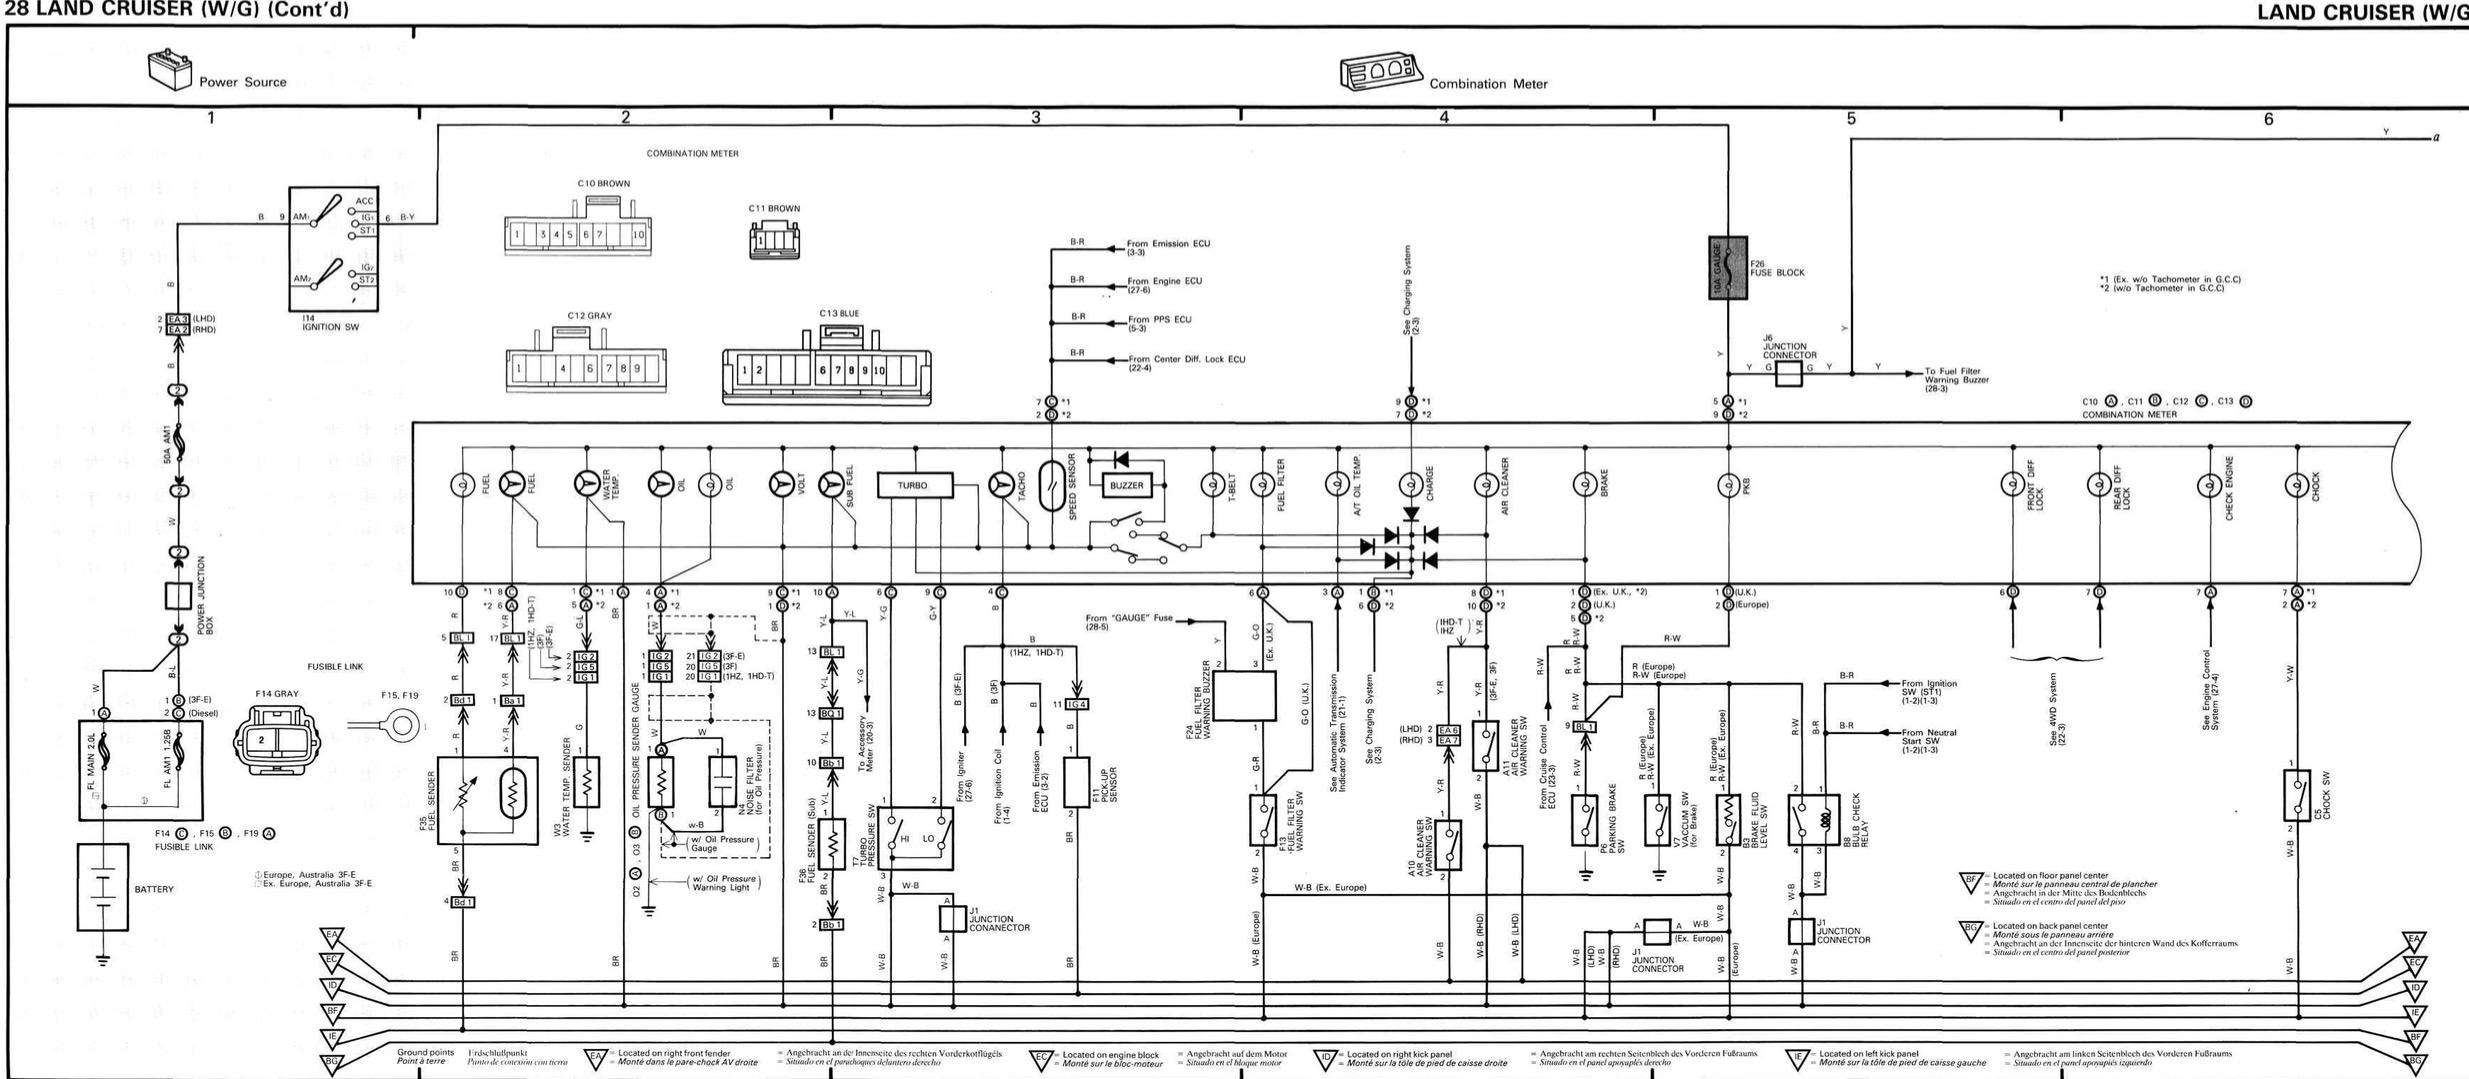 e wiring diagram pdf e automotive wiring diagrams wiring diagram pdf screen shot 2015 05 15 at 19 31